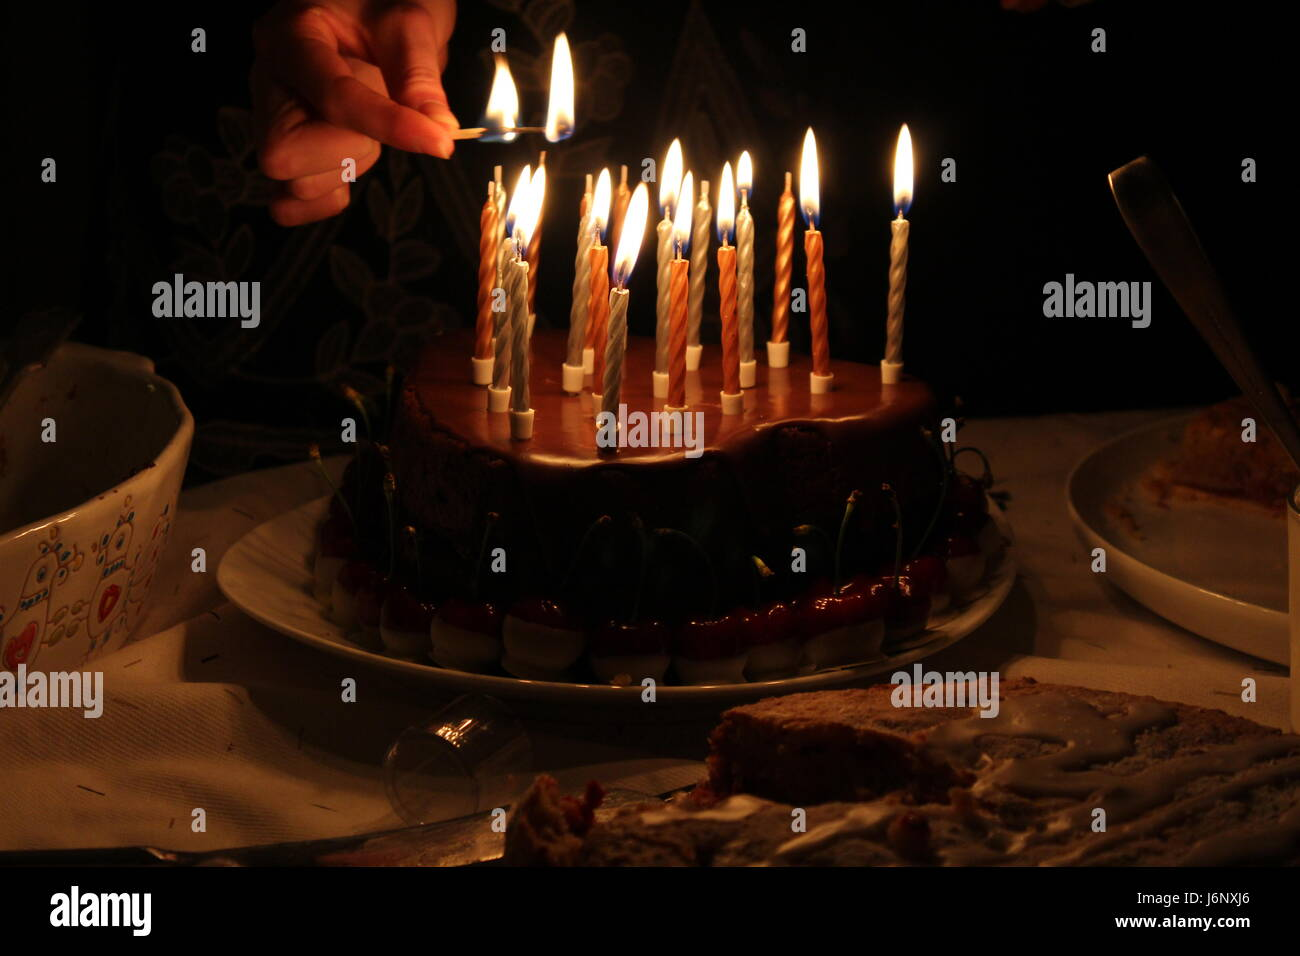 Marvelous Hearted Shape Chocolate Birthday Cake With Lit Candles And Hand Personalised Birthday Cards Cominlily Jamesorg